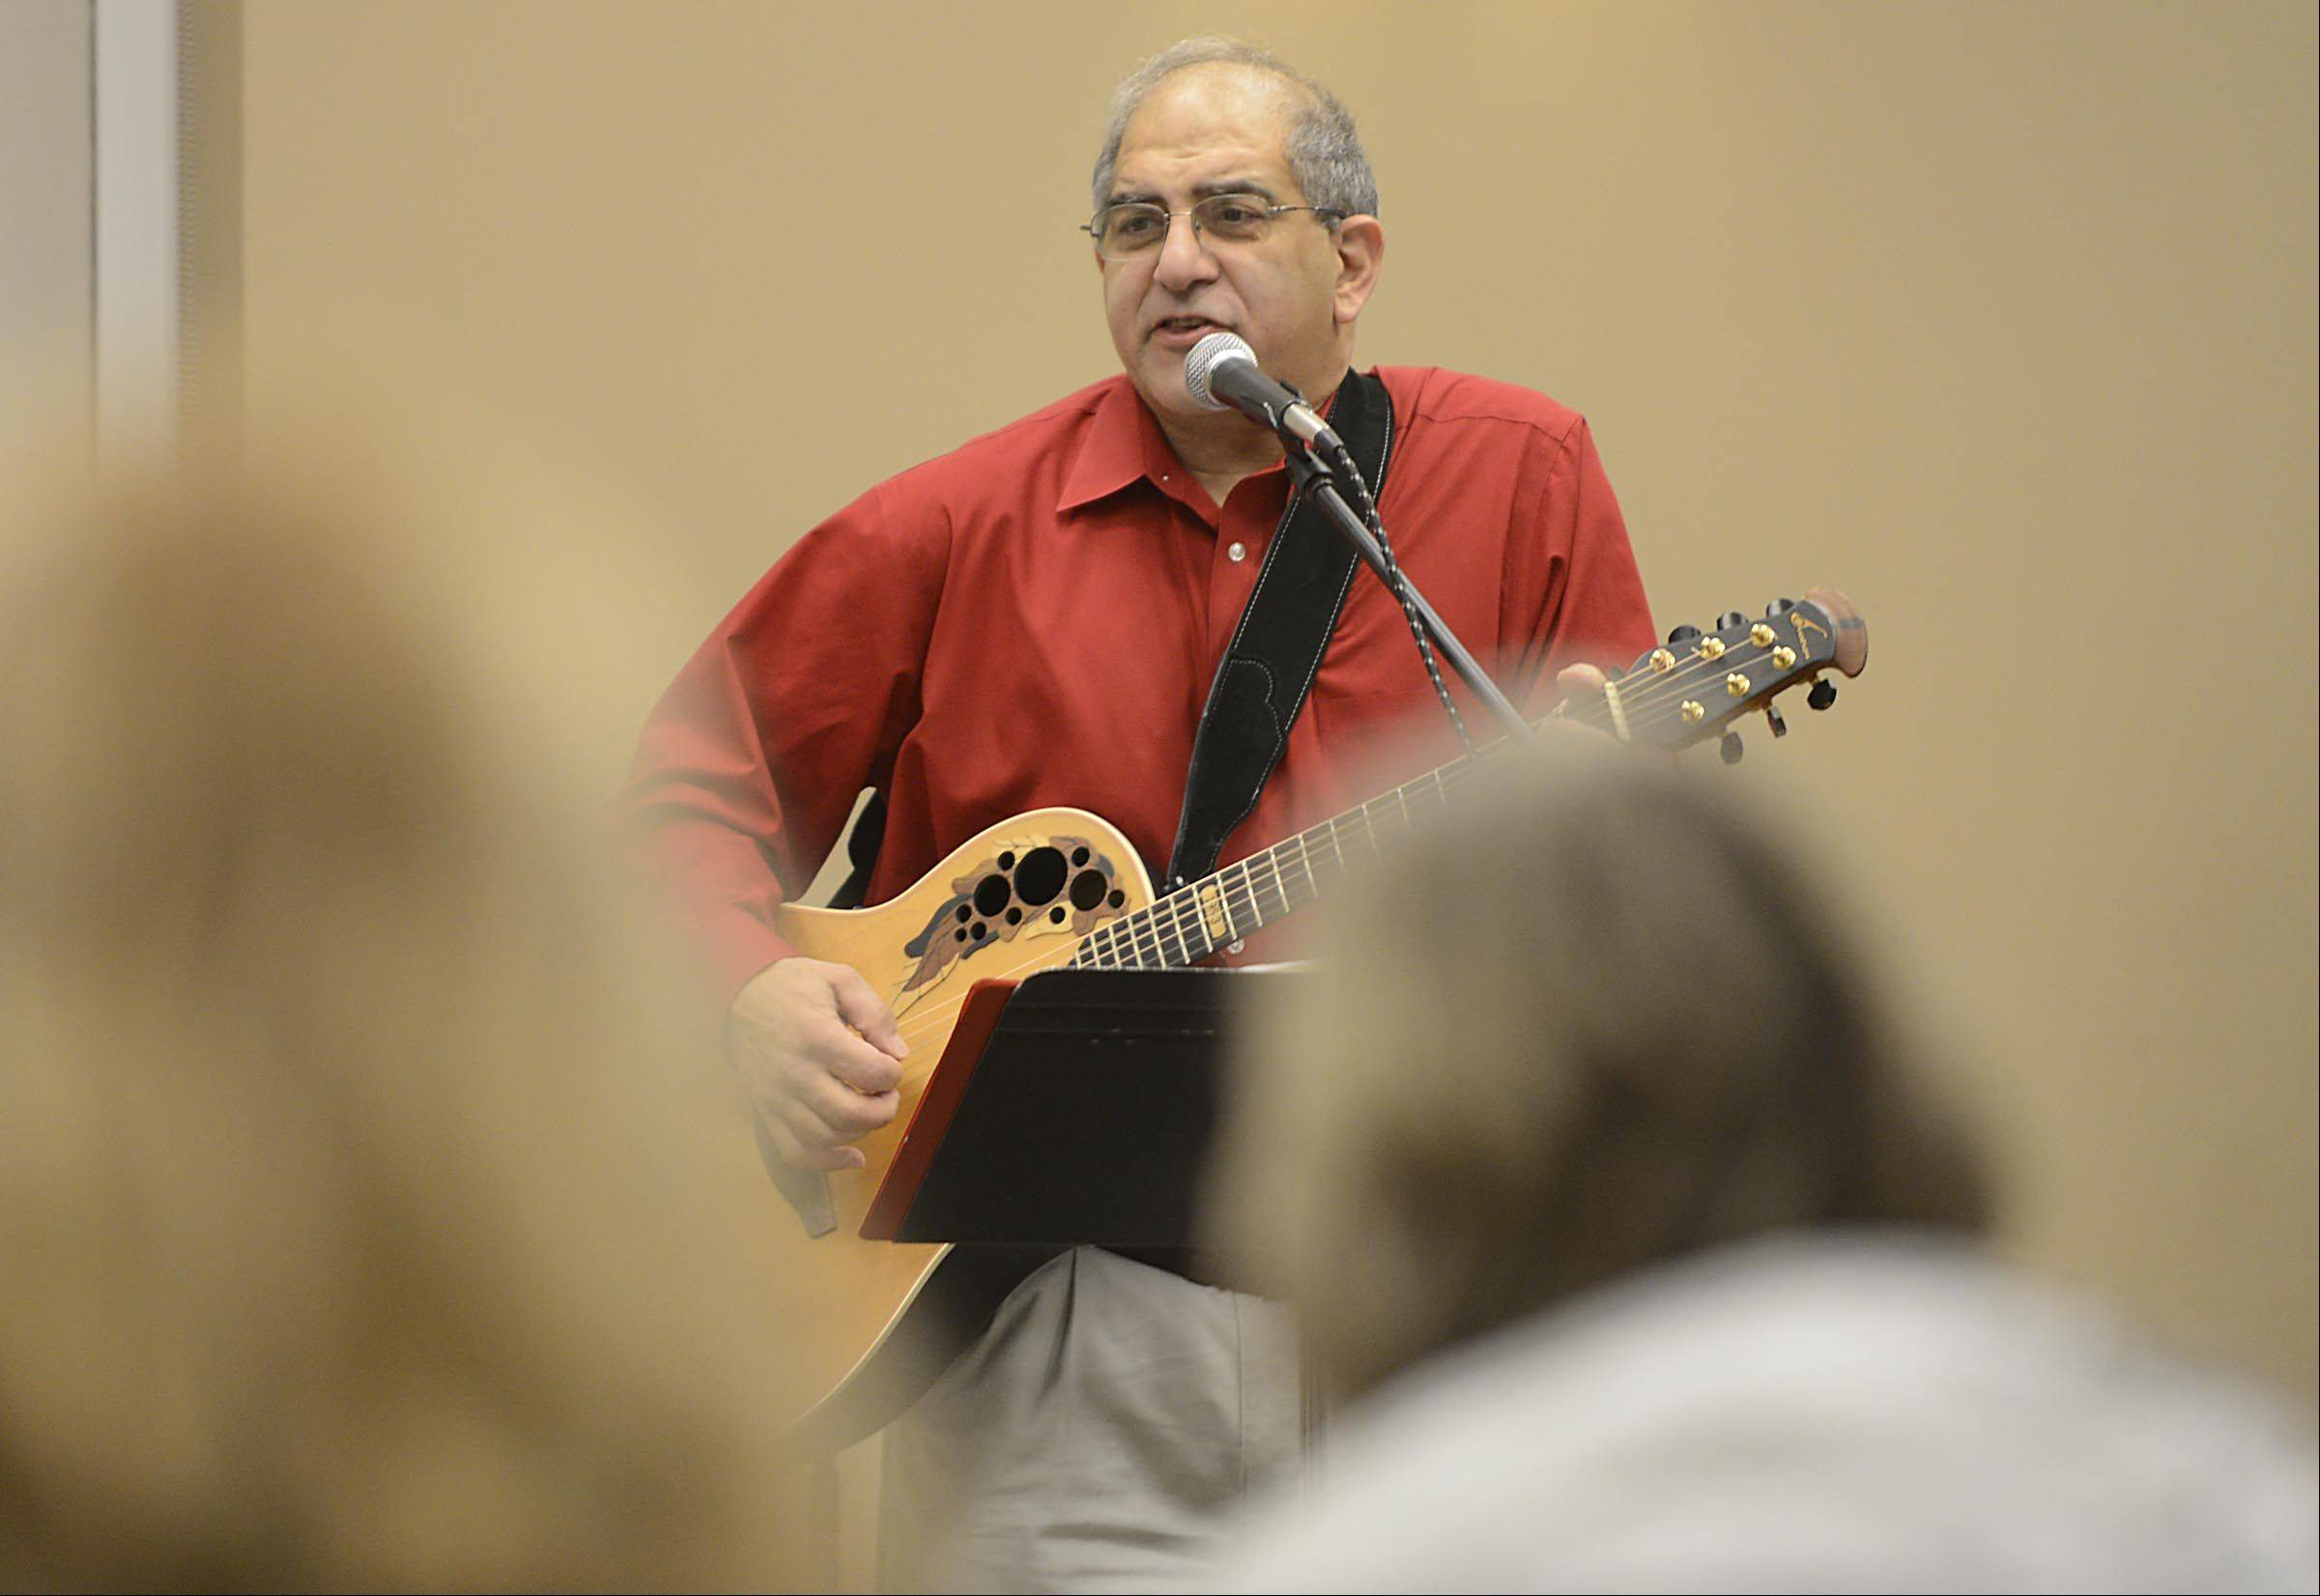 Musician Tom Malouf, of Roselle, sings Christmas carols Sunday at the Batavia Public Library. He had guest appearances onstage, including his daughter, puppets, and Santa Claus.